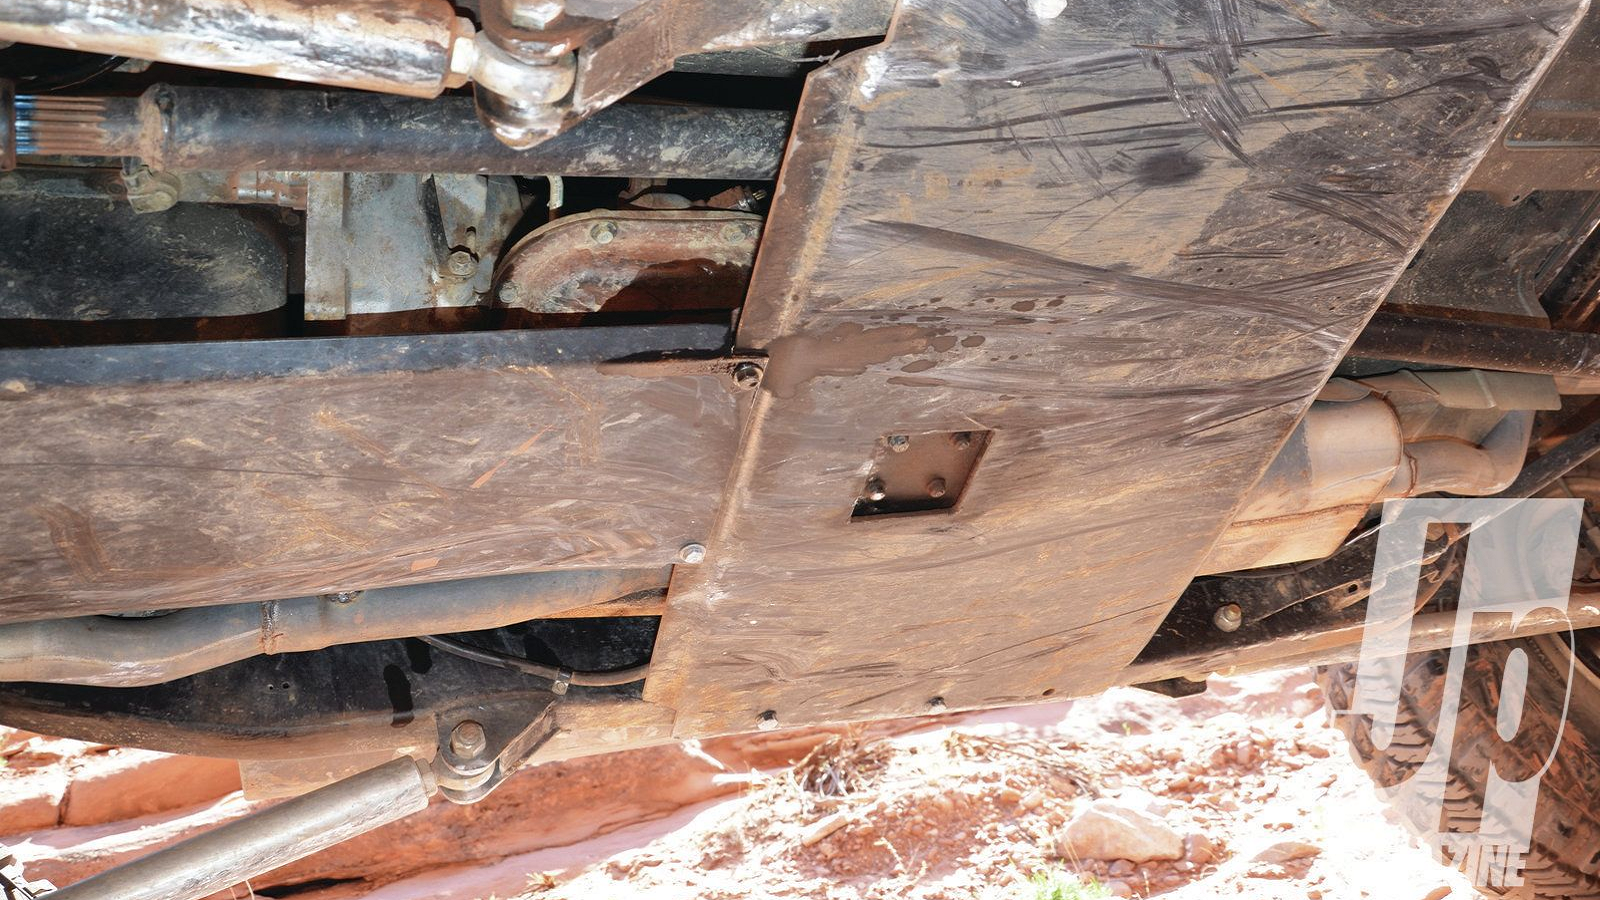 1949 Willys Has No Issues at Moab